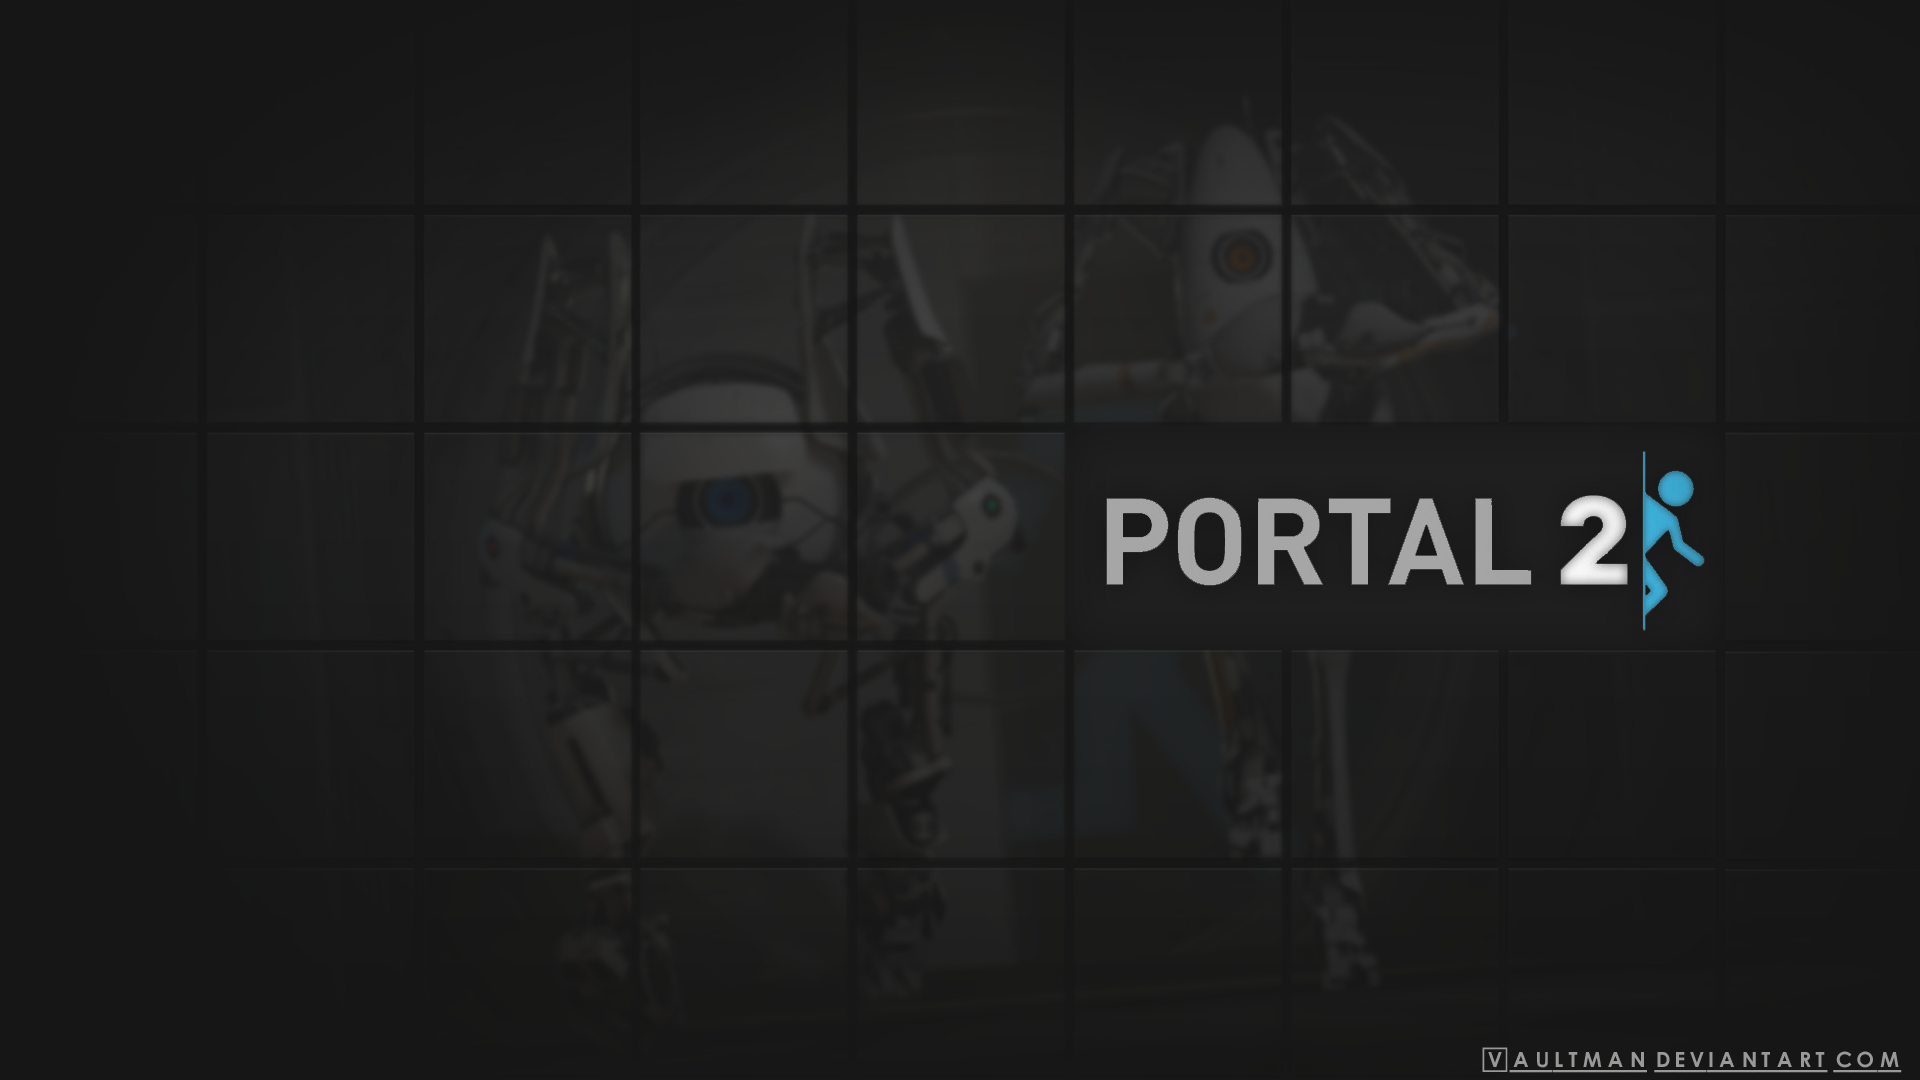 Portal best widescreen background HD Wallpaper